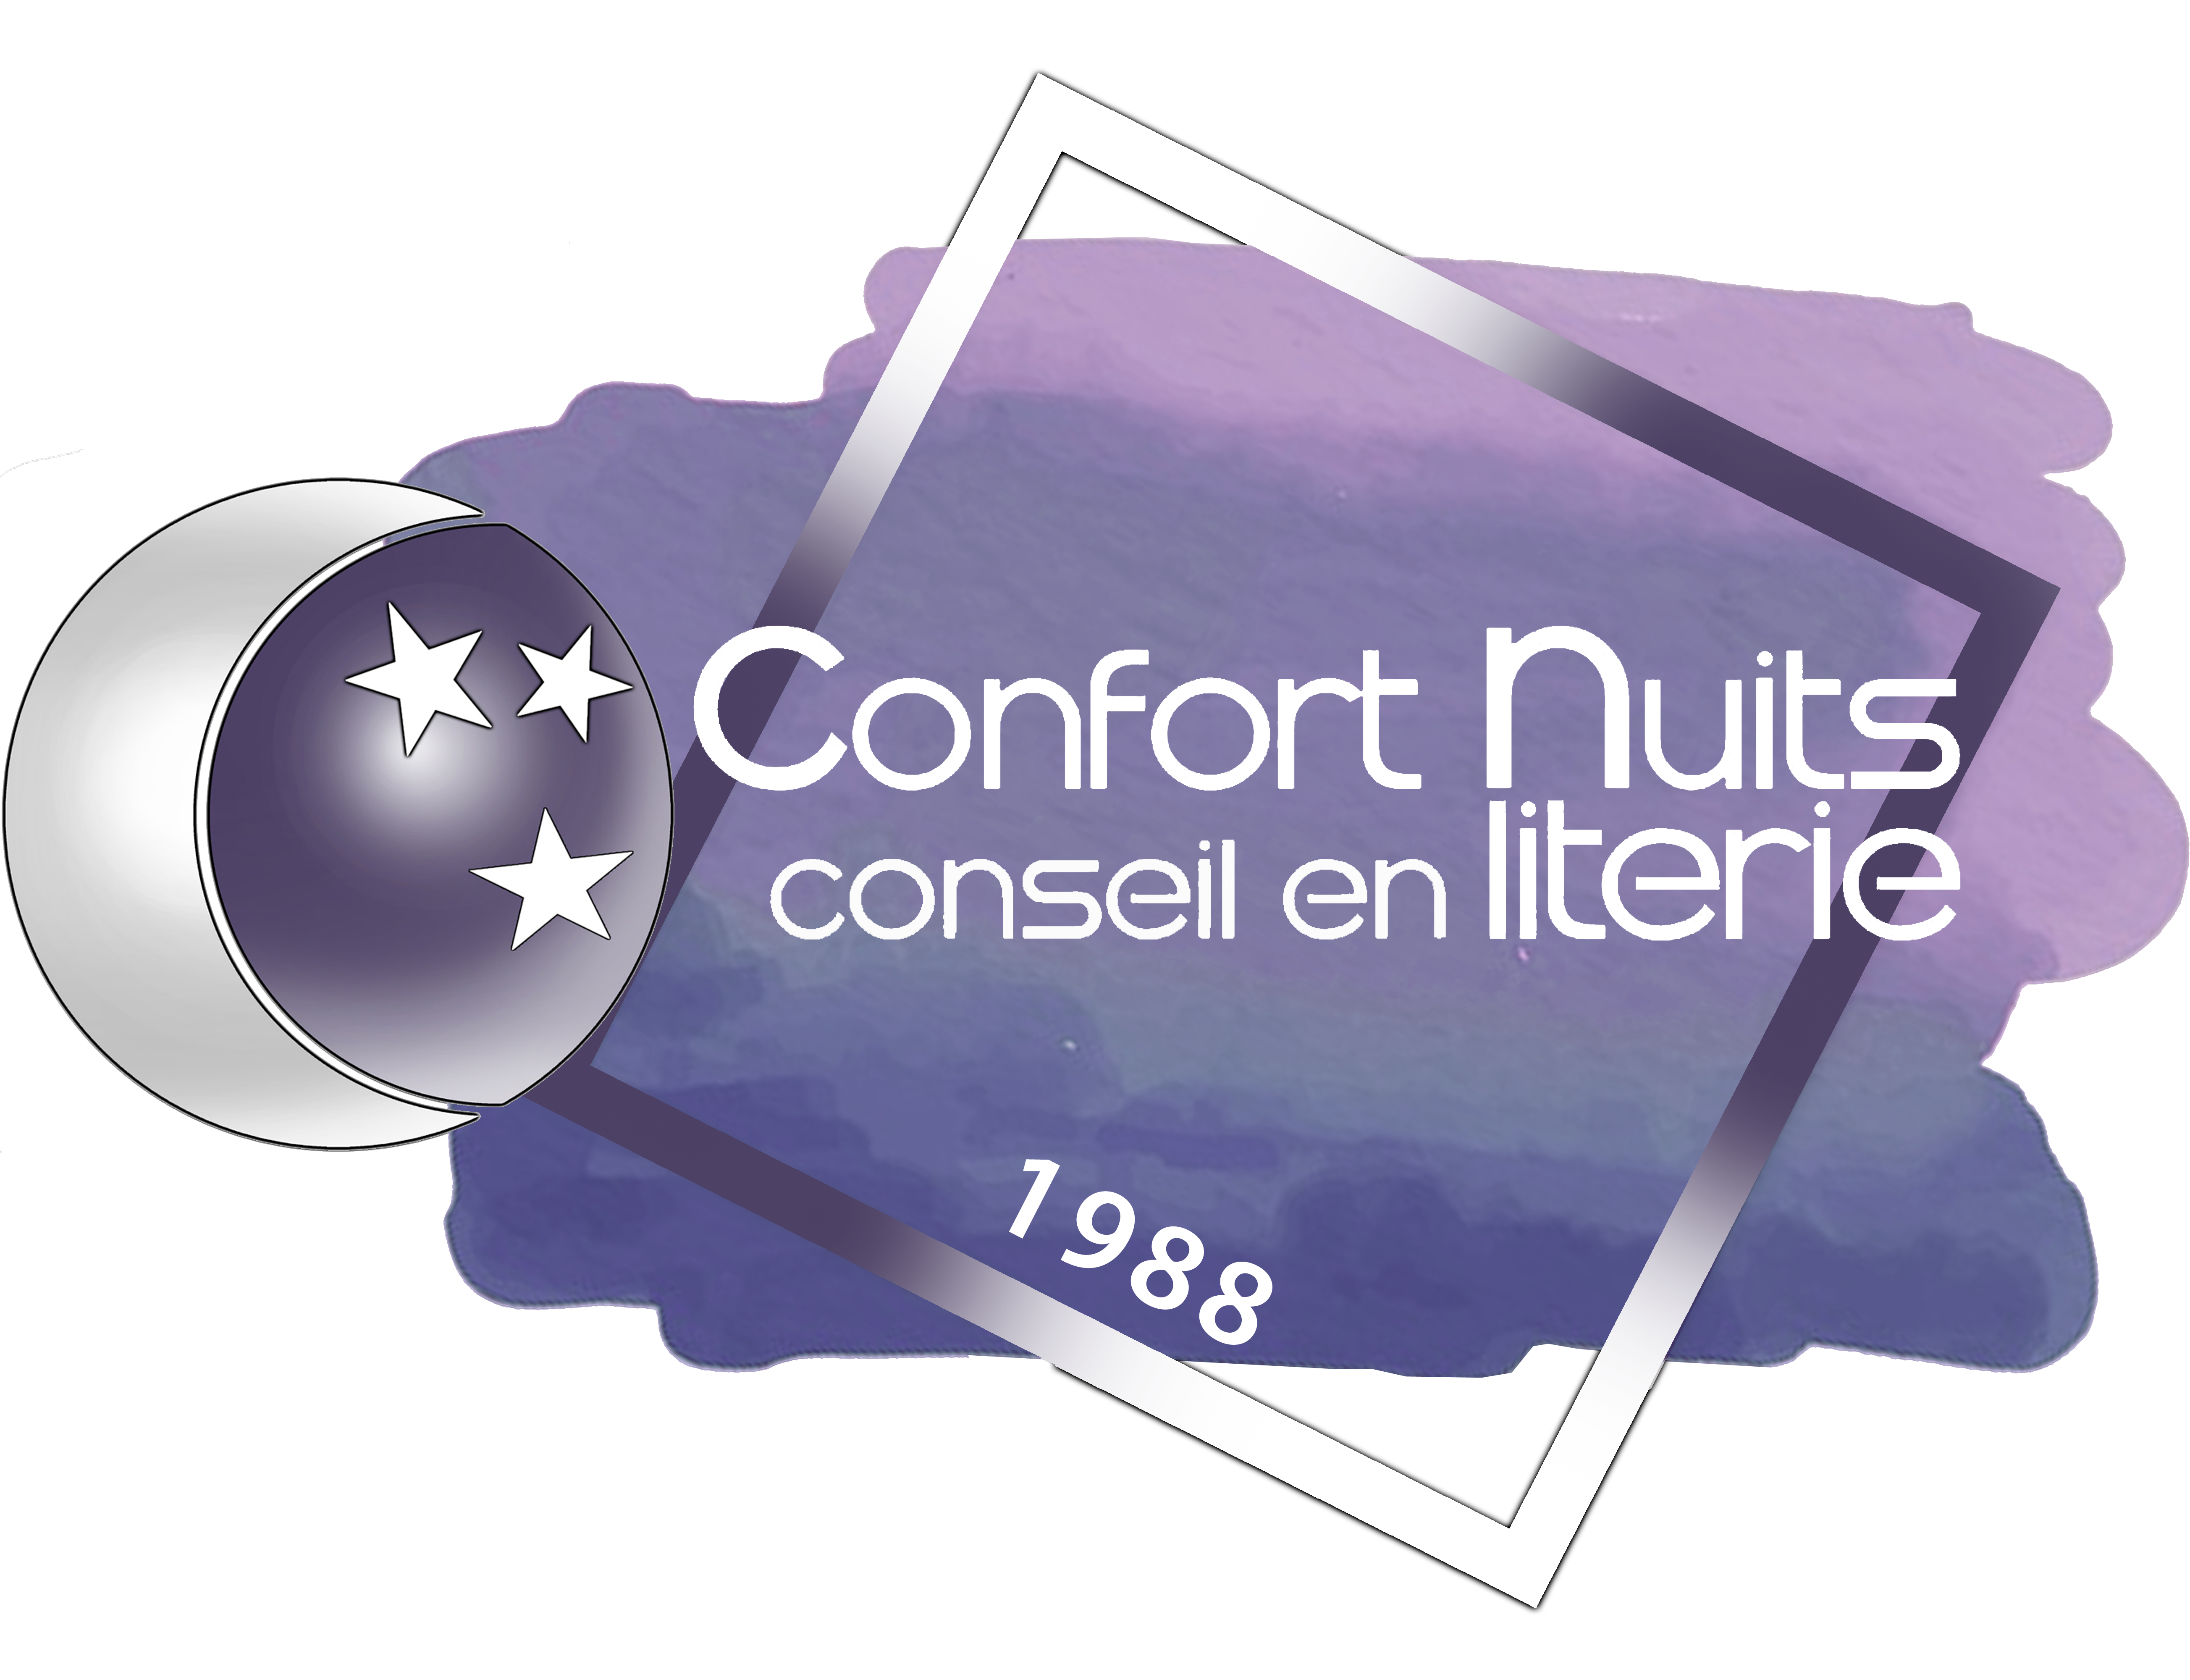 Confort Nuits